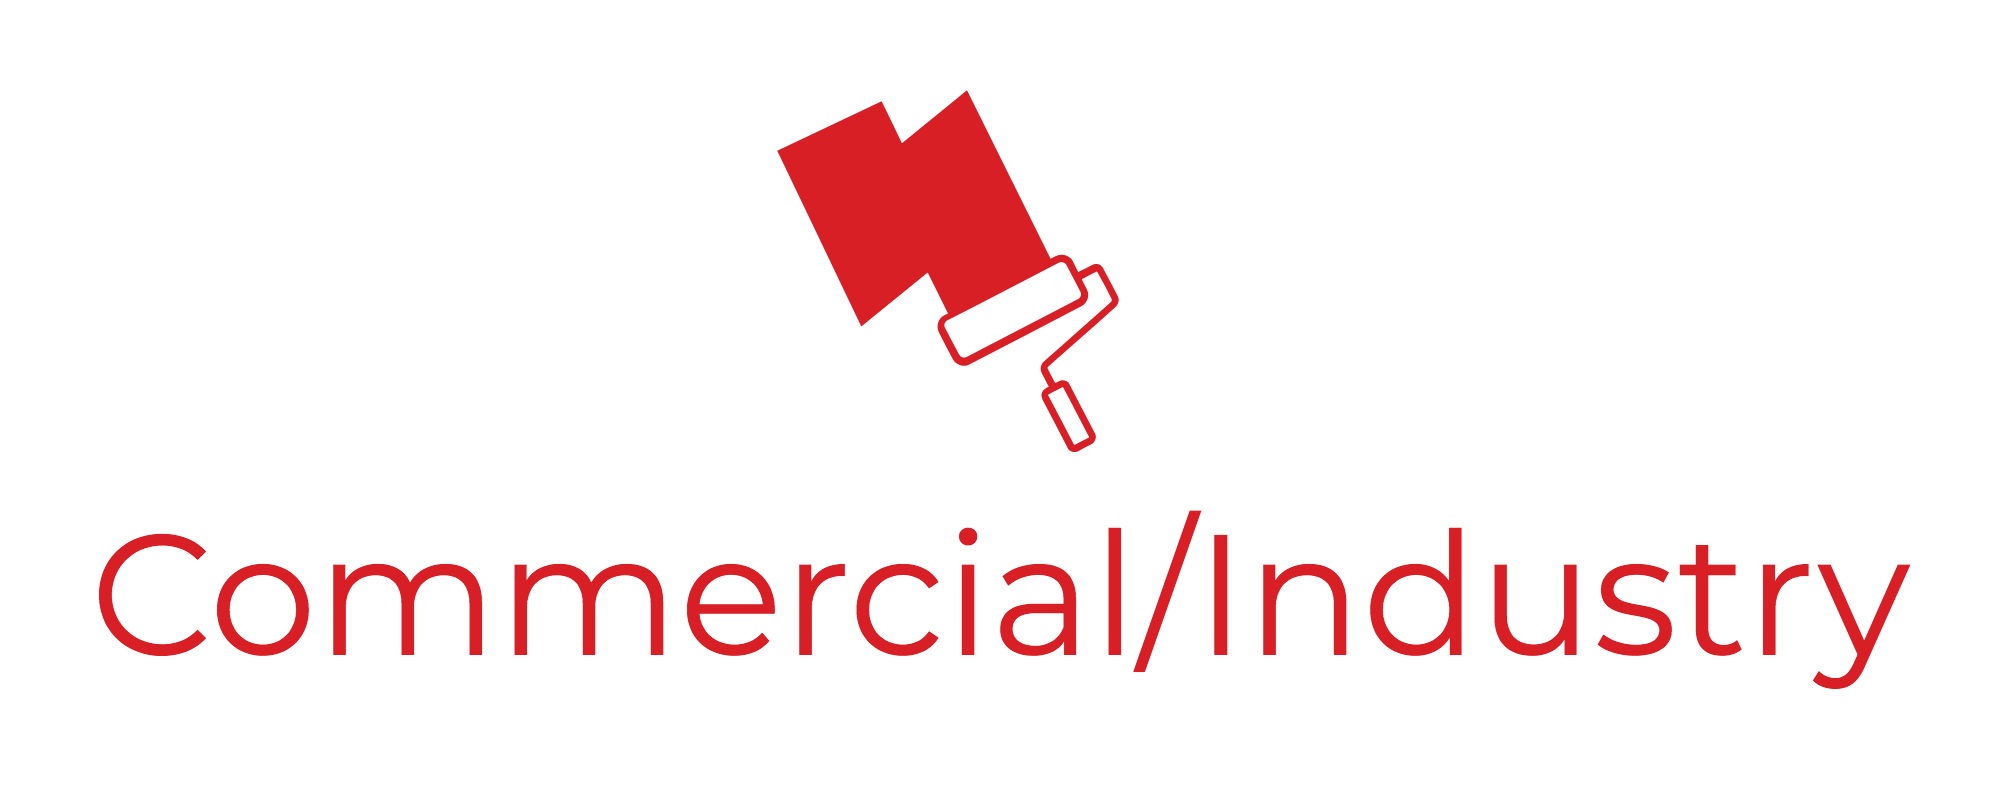 Commercial_Industry-logo.png